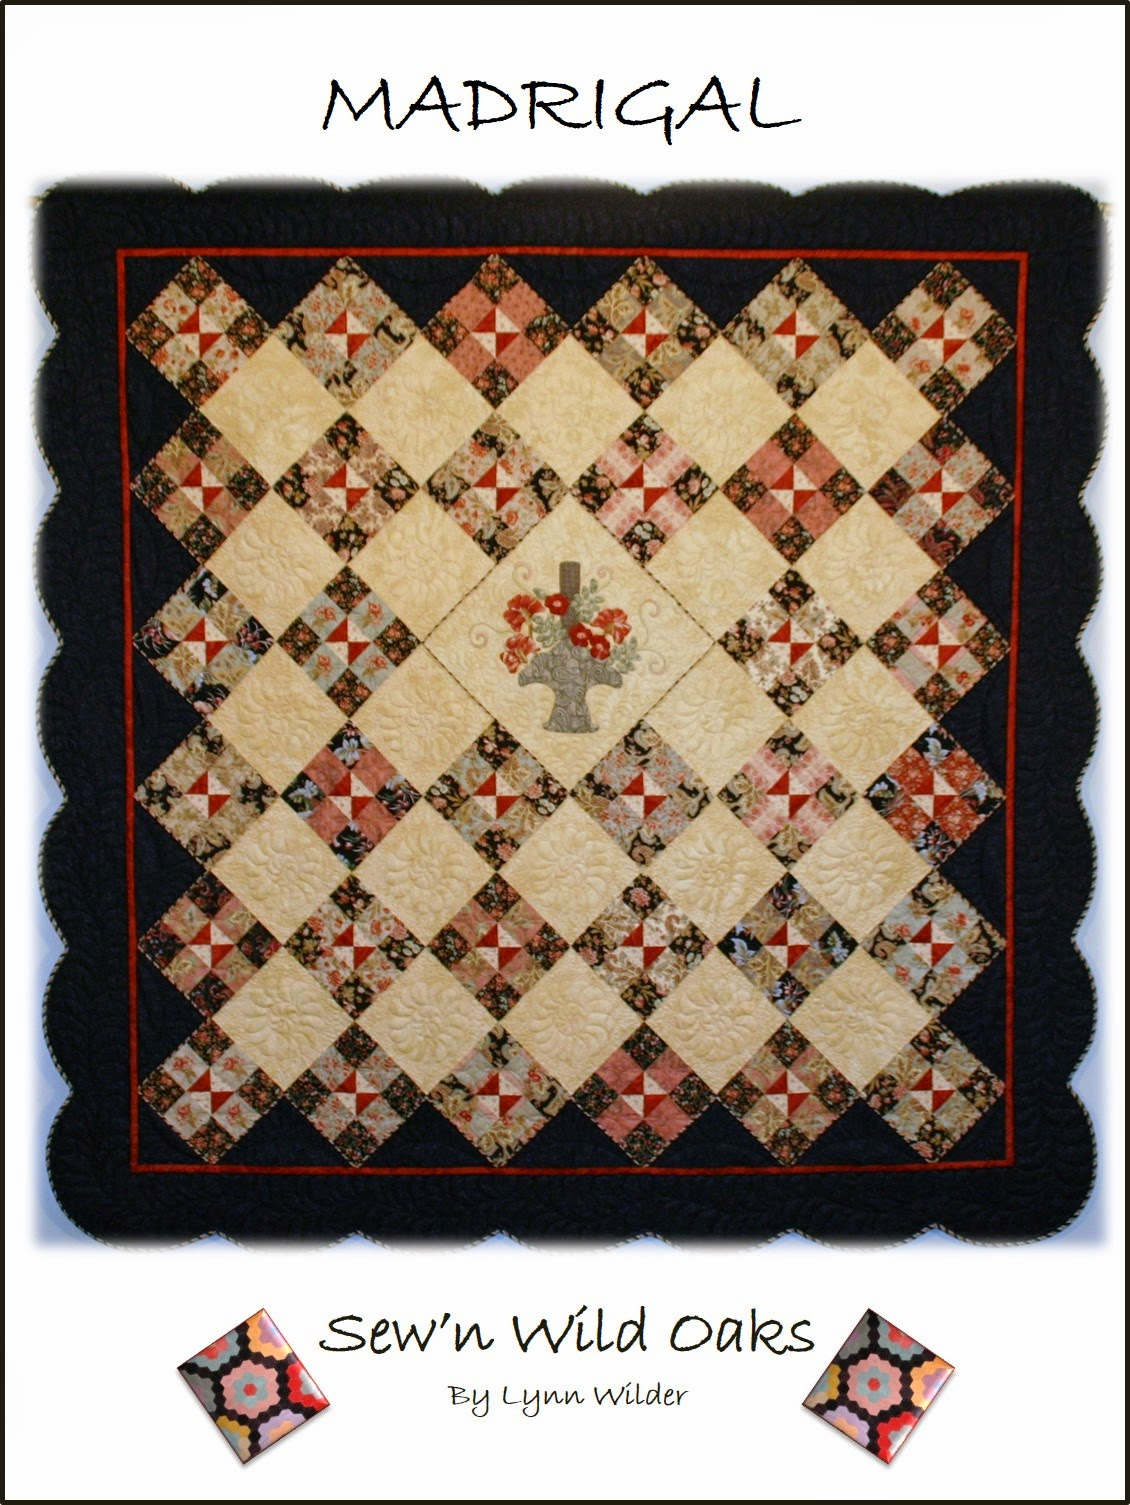 http://www.inbetweenstitches.com/shop/Patterns/p/Madrigal-Quilt-x2491544.htm